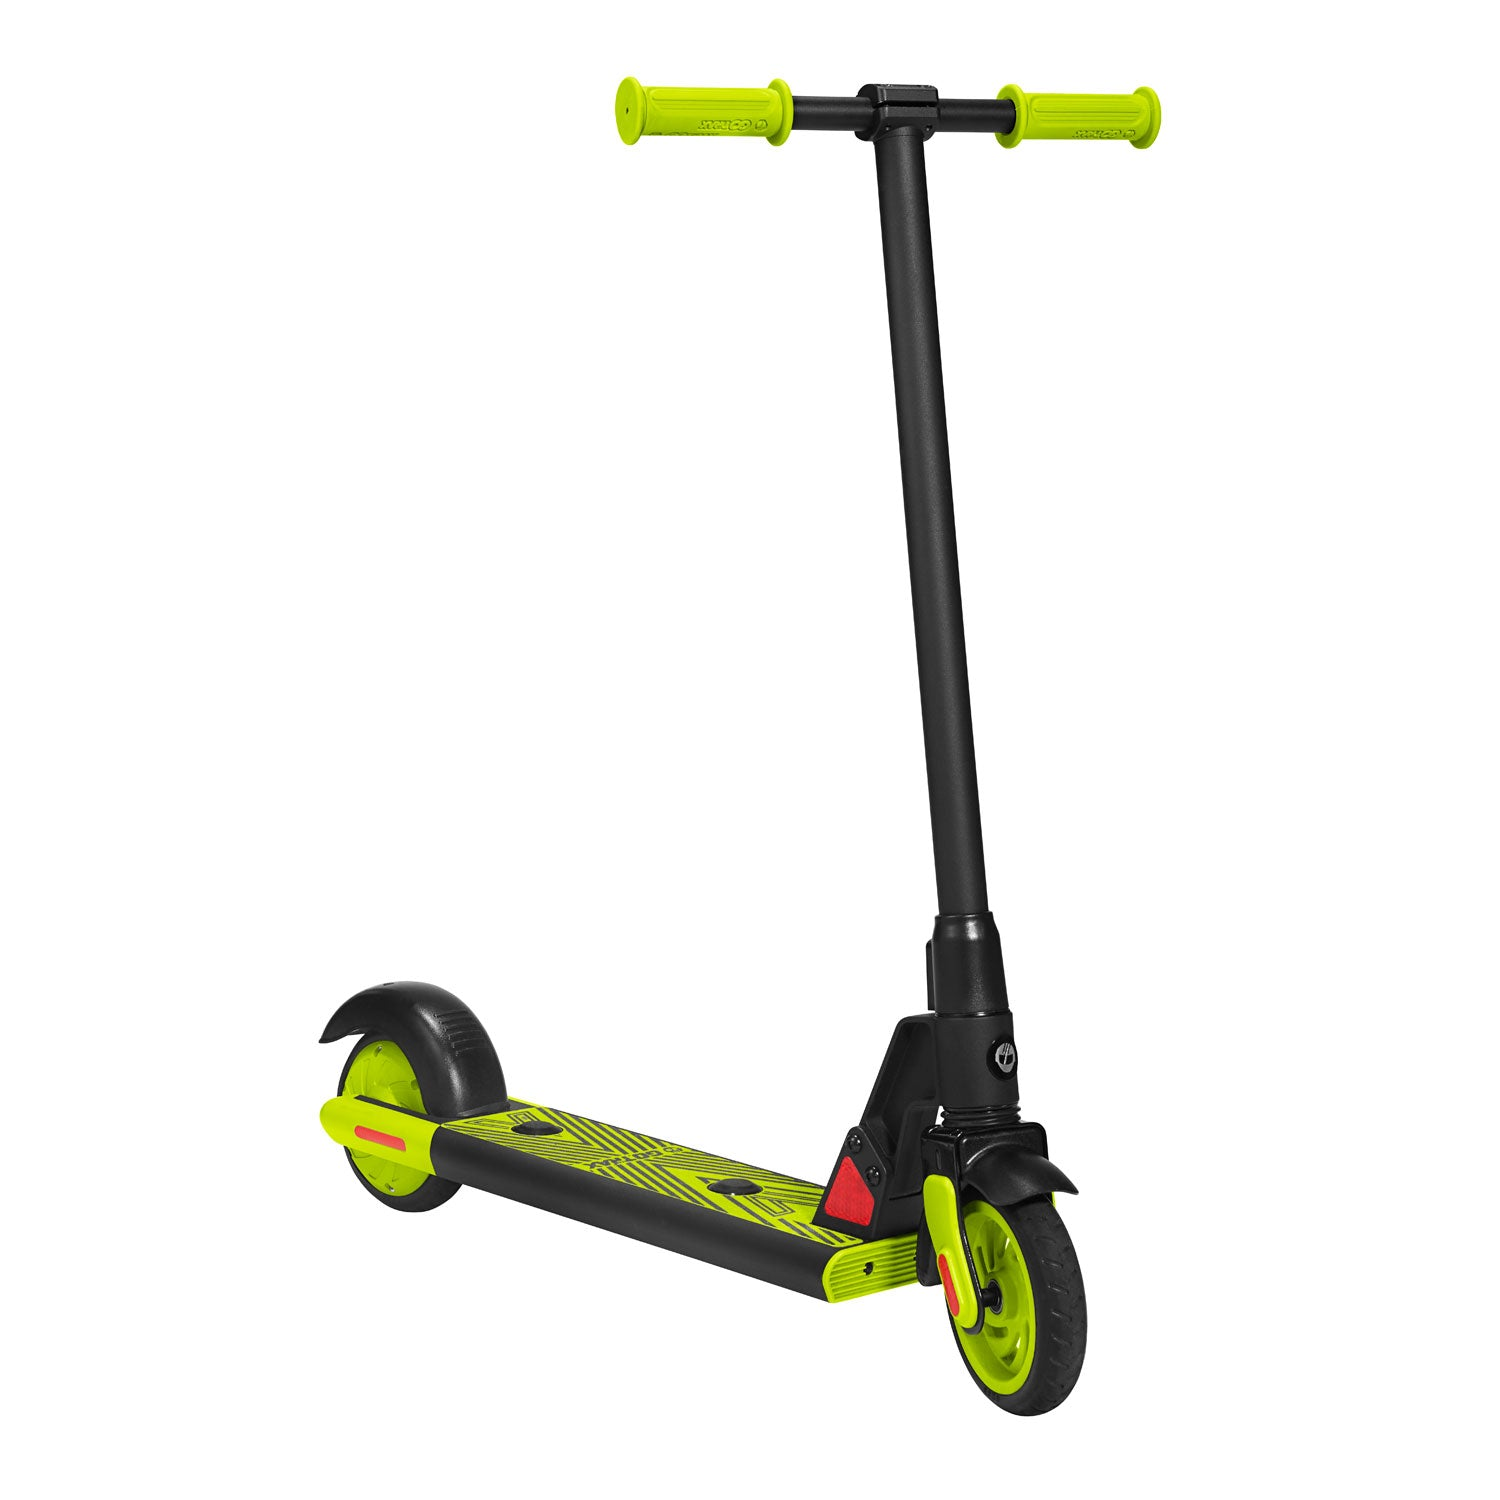 Green gks electric scooter for kids main image